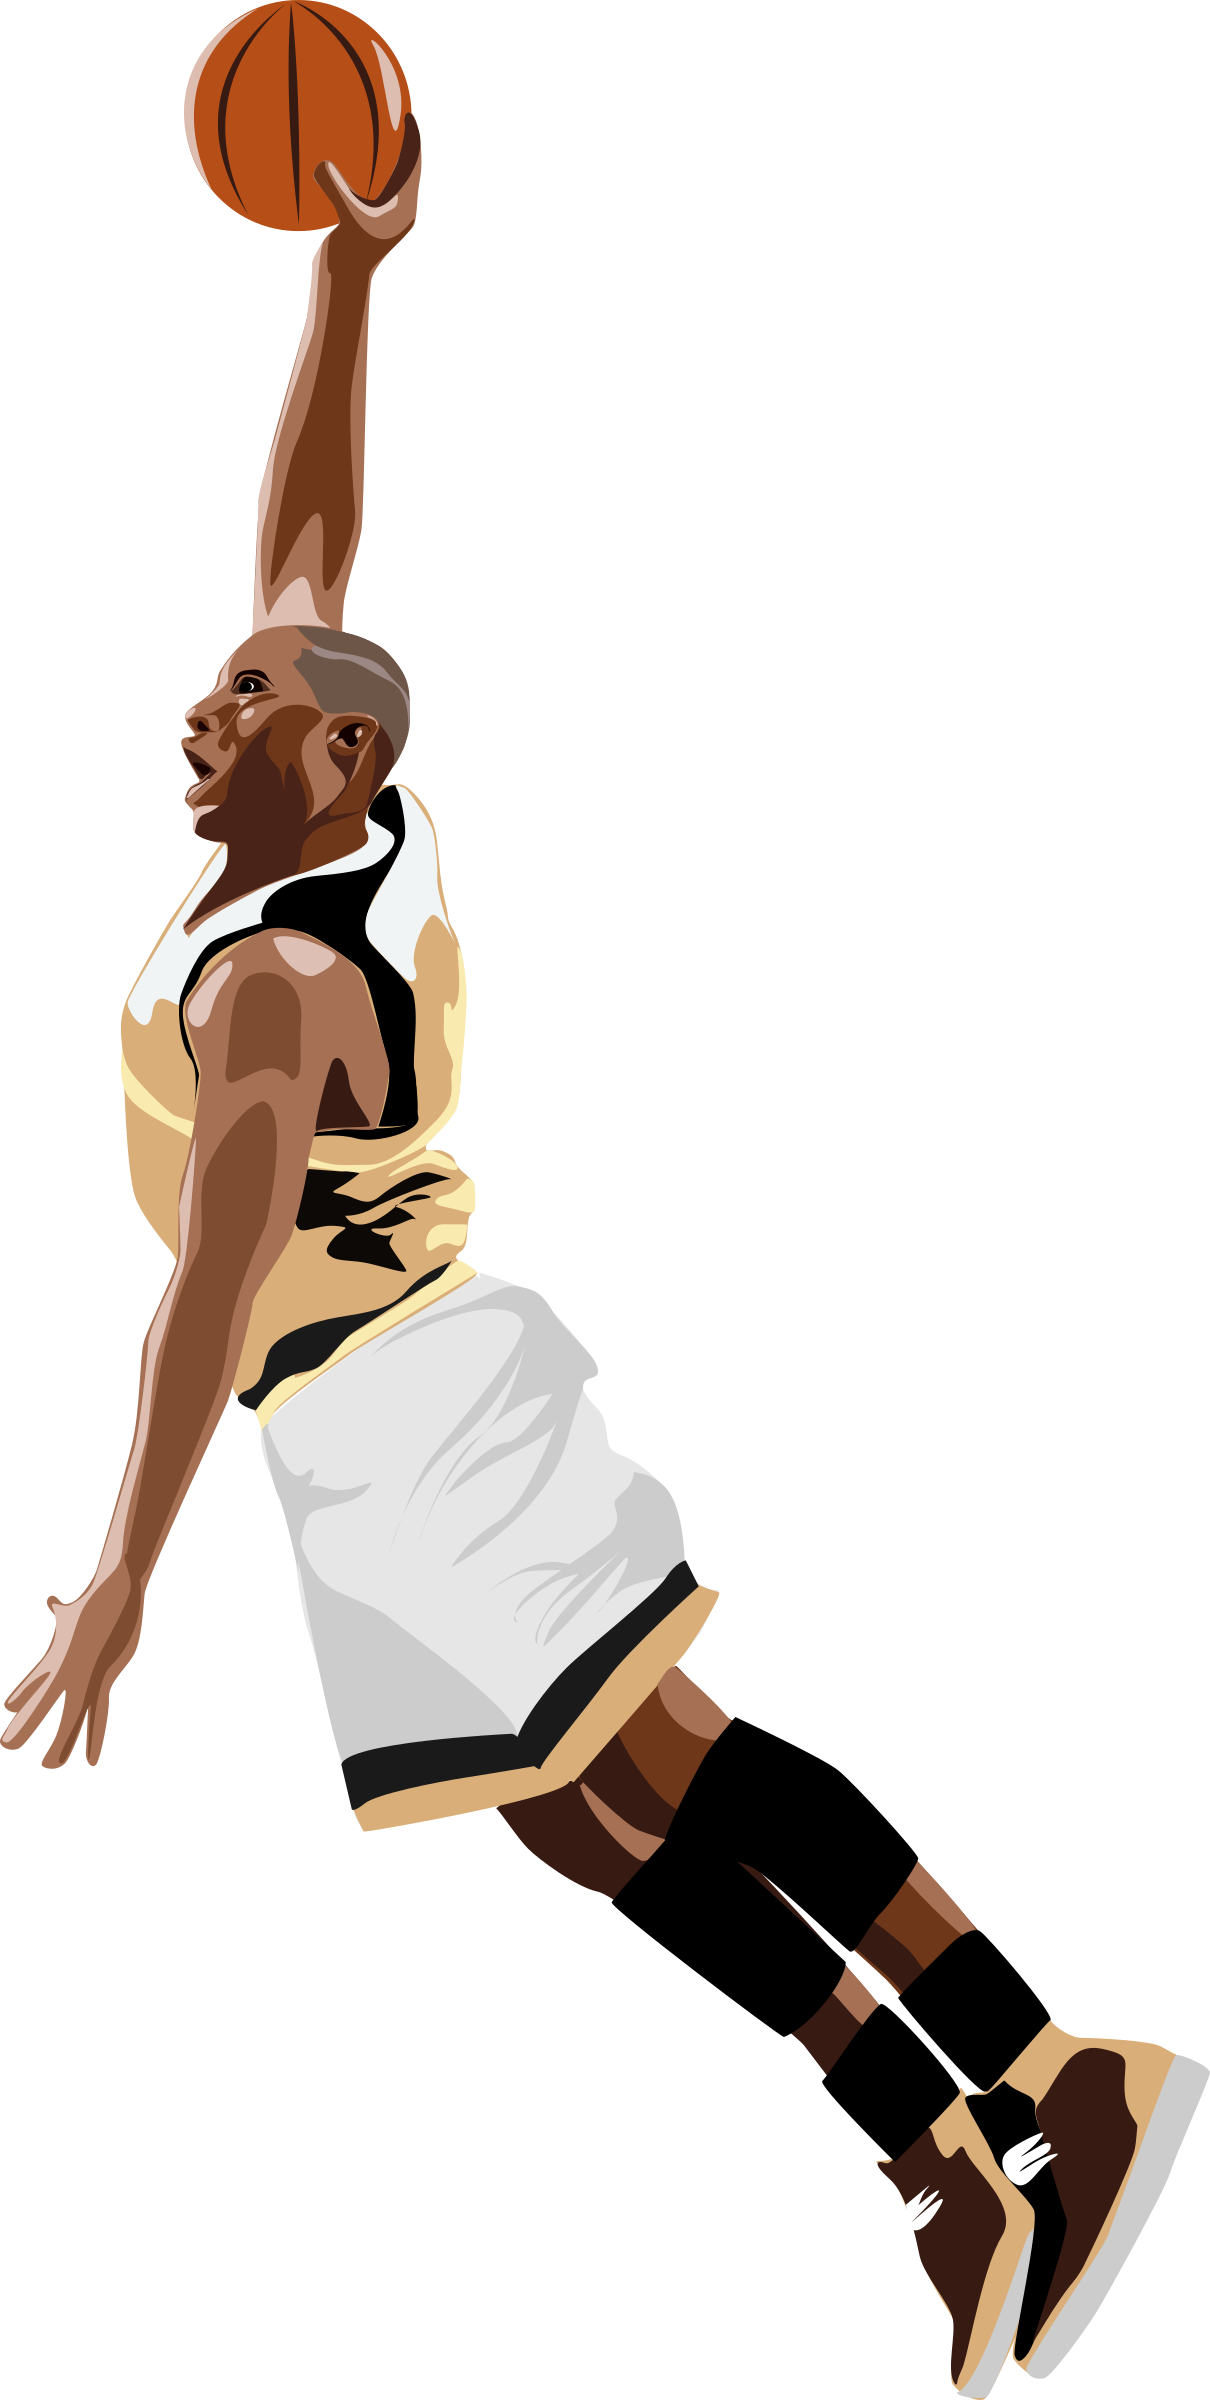 Basketball player clipart png png free ⚽Free⚽ Basketball Clip Art Graphics, Images, Photos Download png free